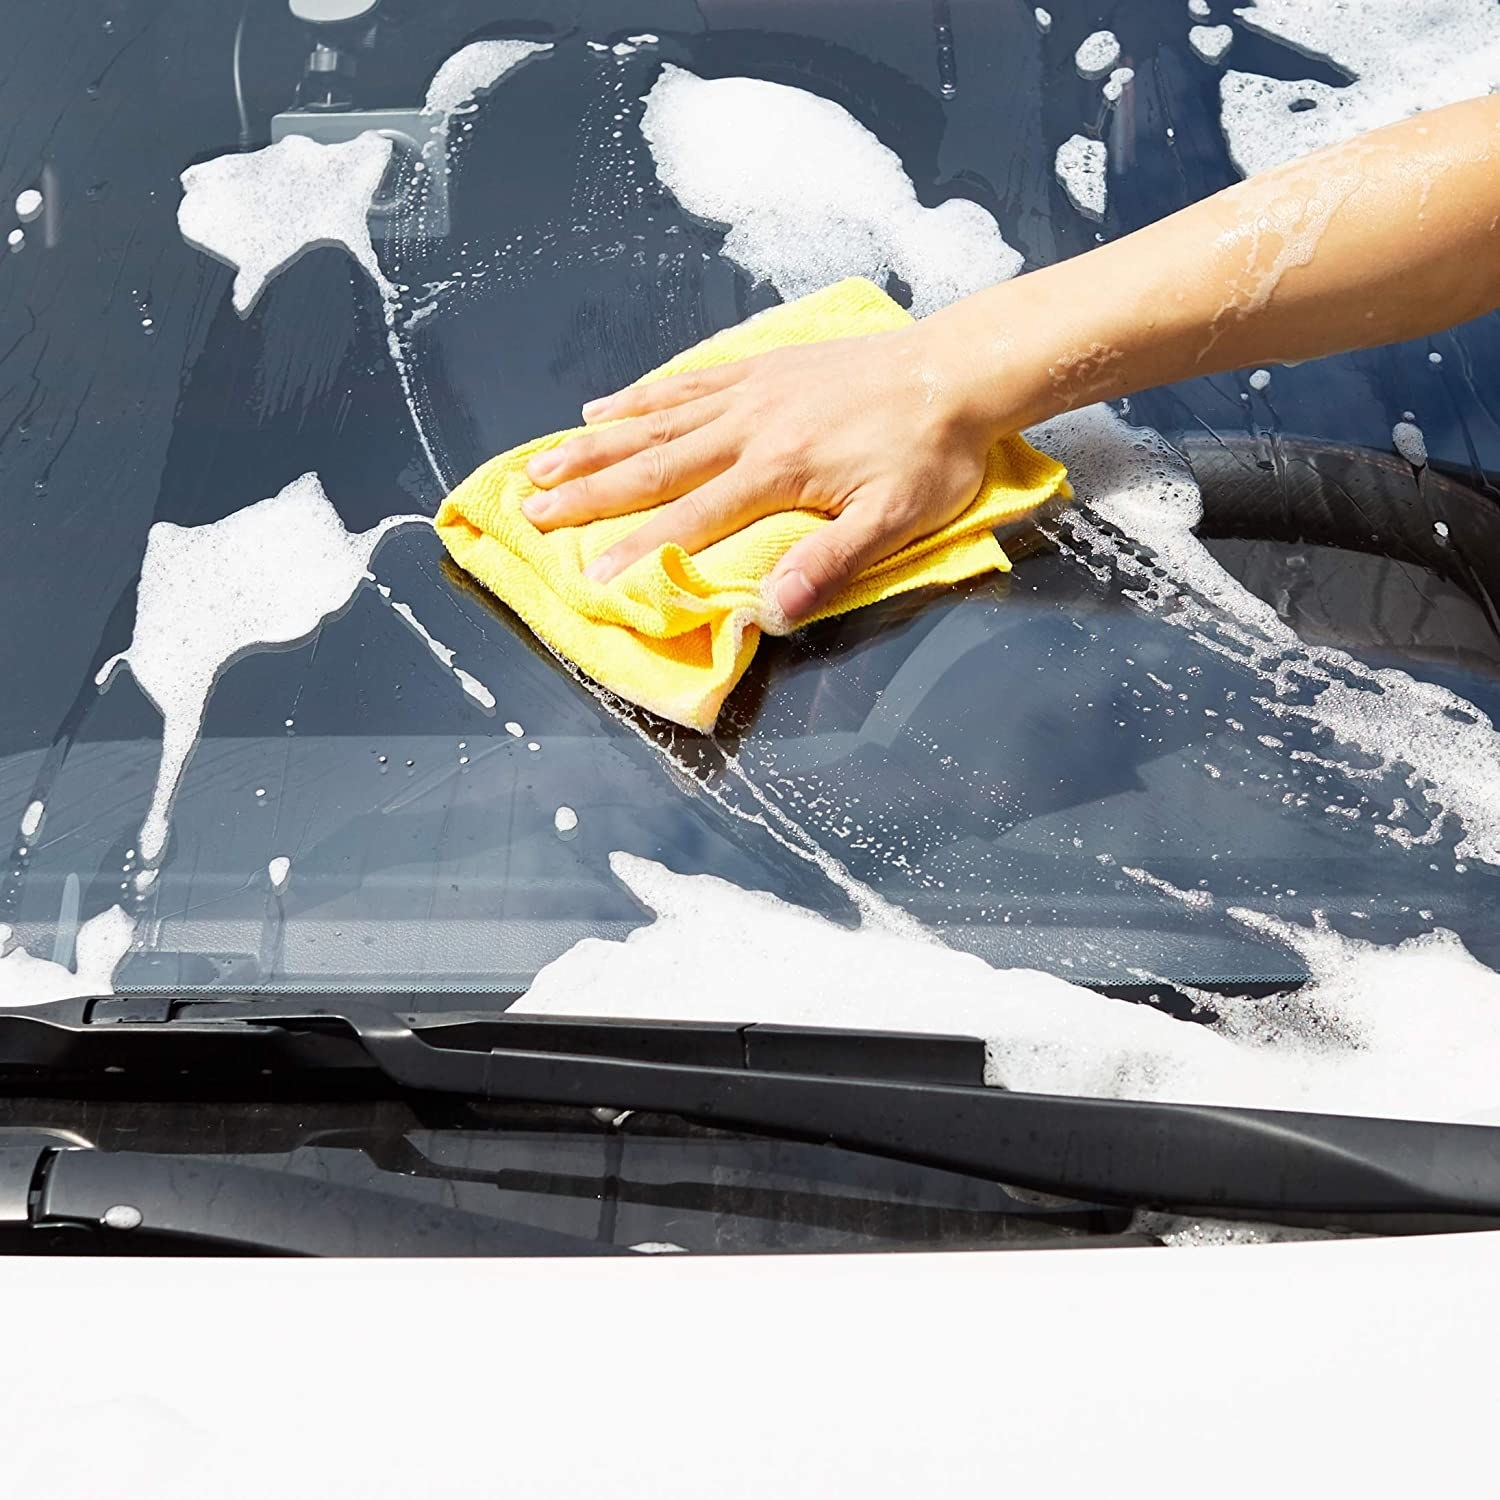 someone using a yellow cloth to clean a car windshield